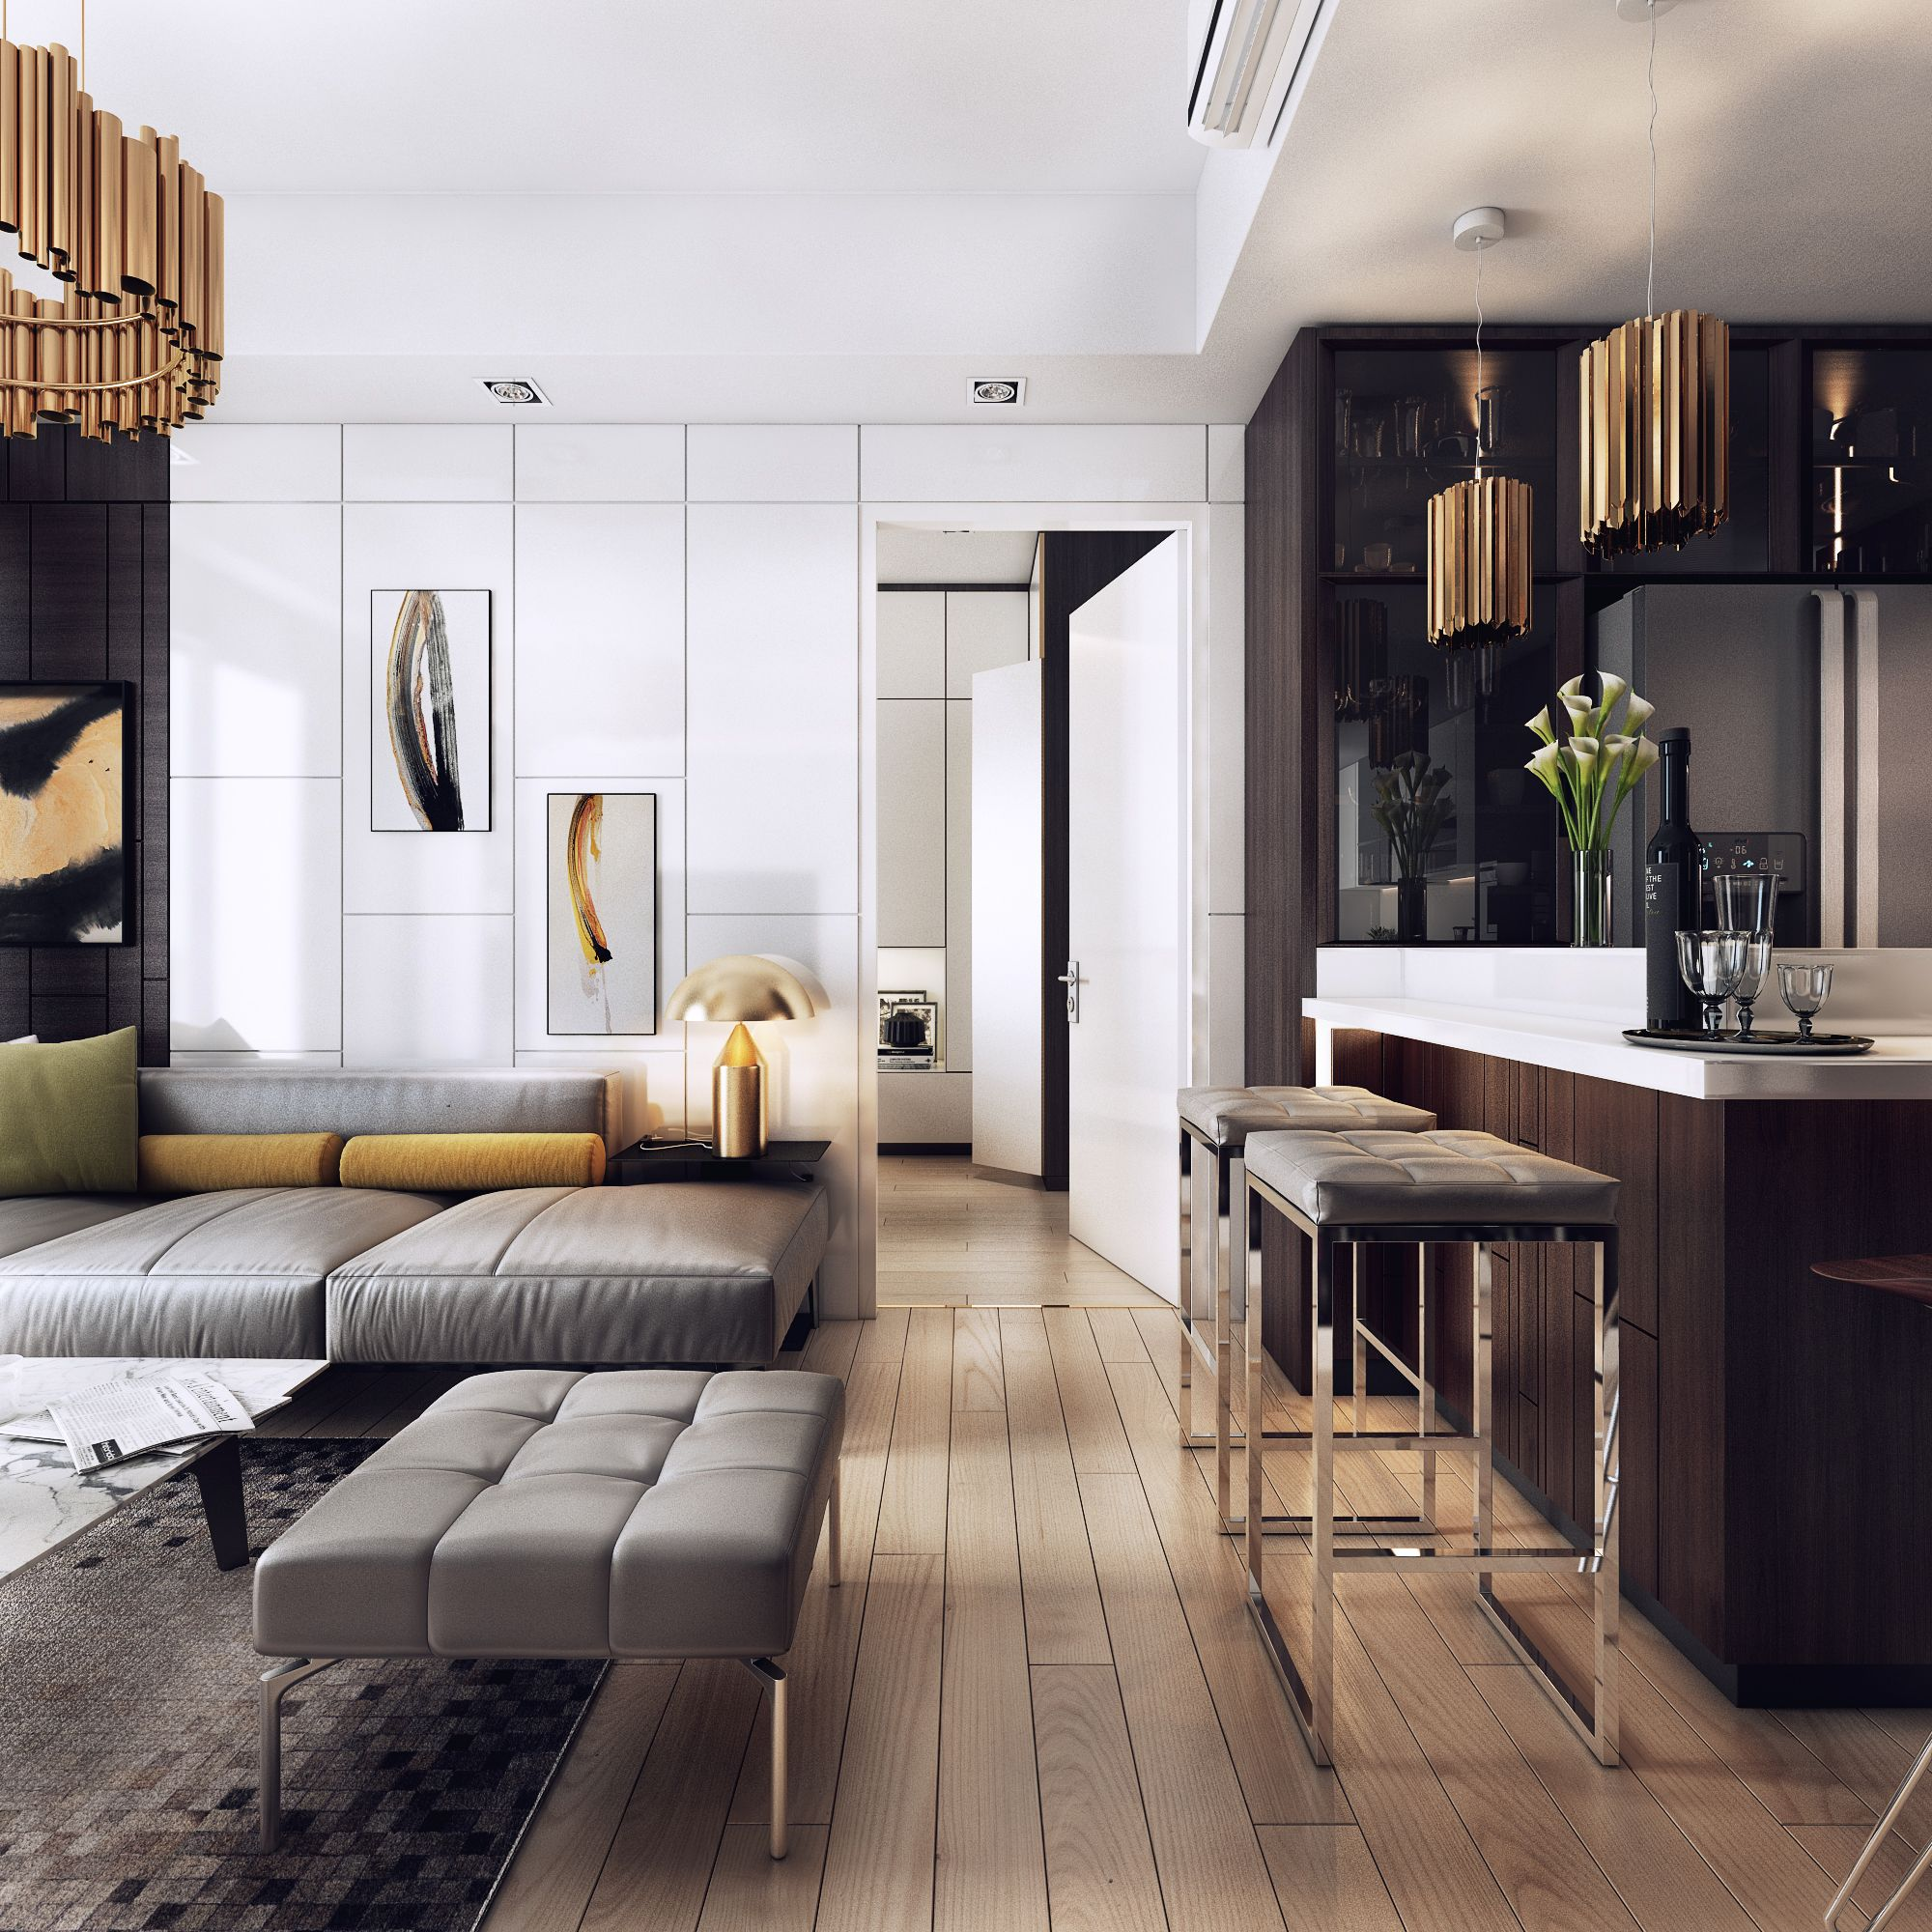 10 Ultra Luxury Apartment Interior Design Ideas  Contemporary  Modern house design  Modern